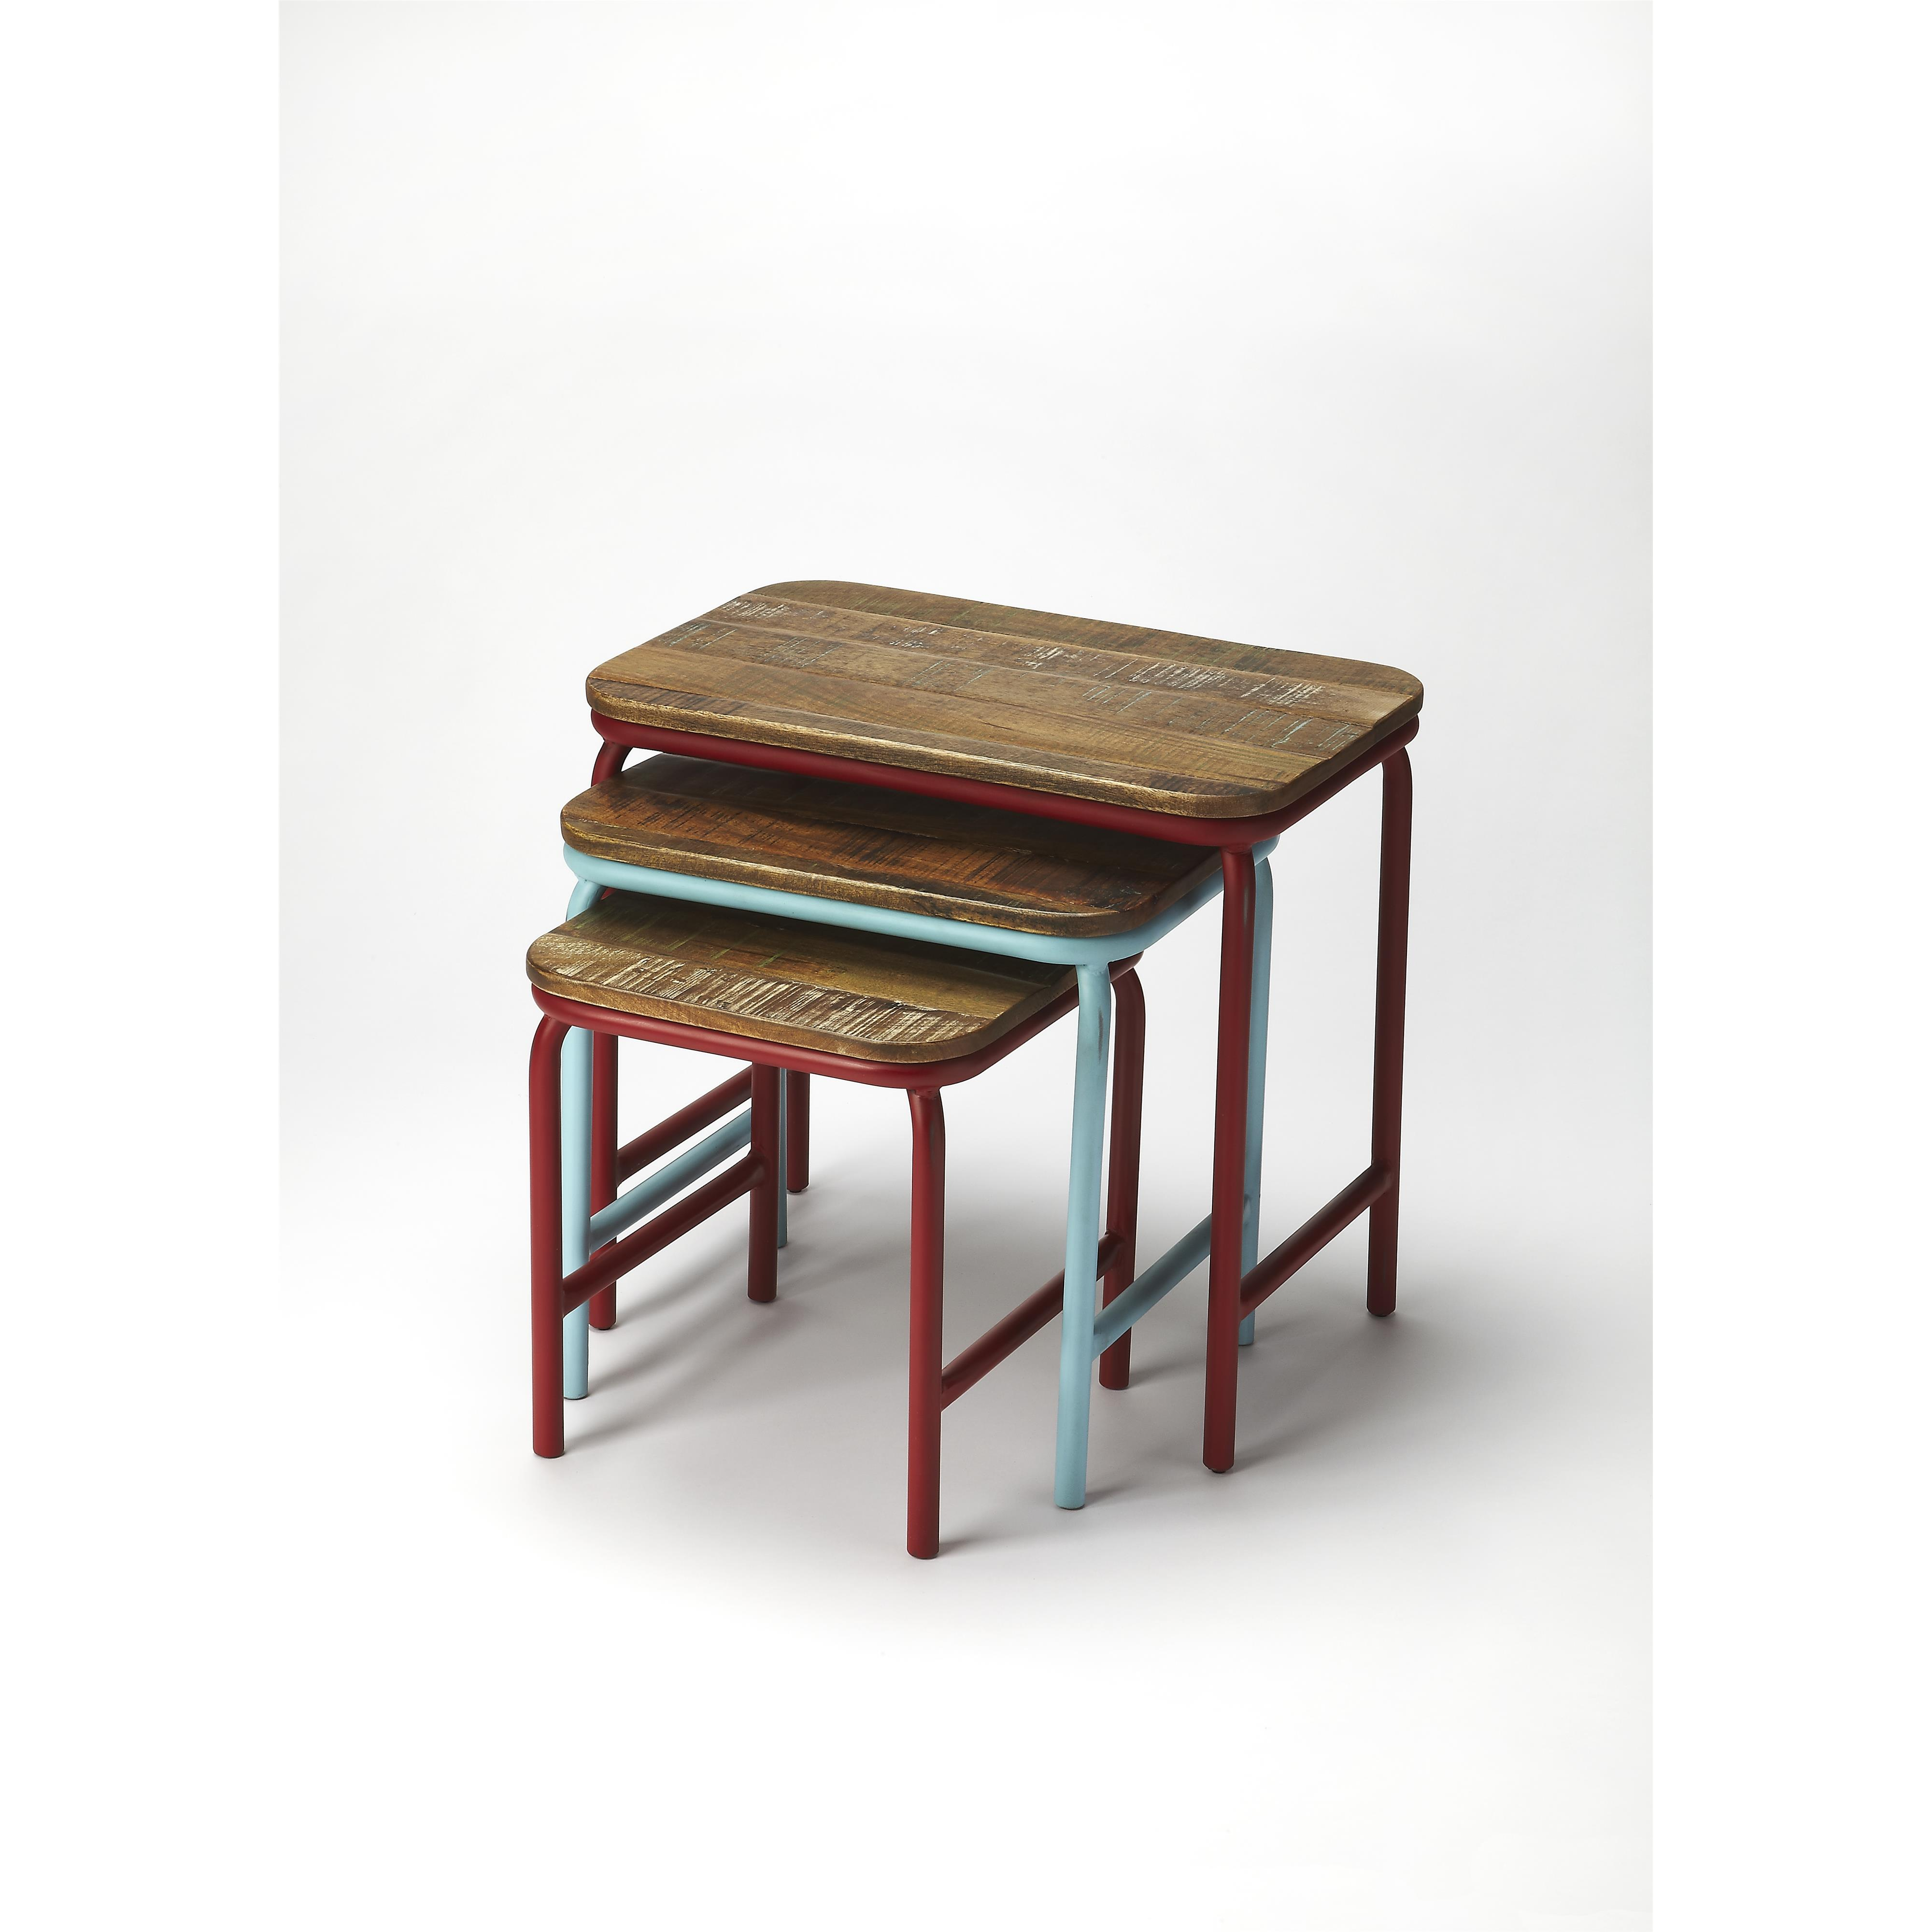 Butler Specialty Company Industrial Chic Nesting Tables - Item Number: 5158330